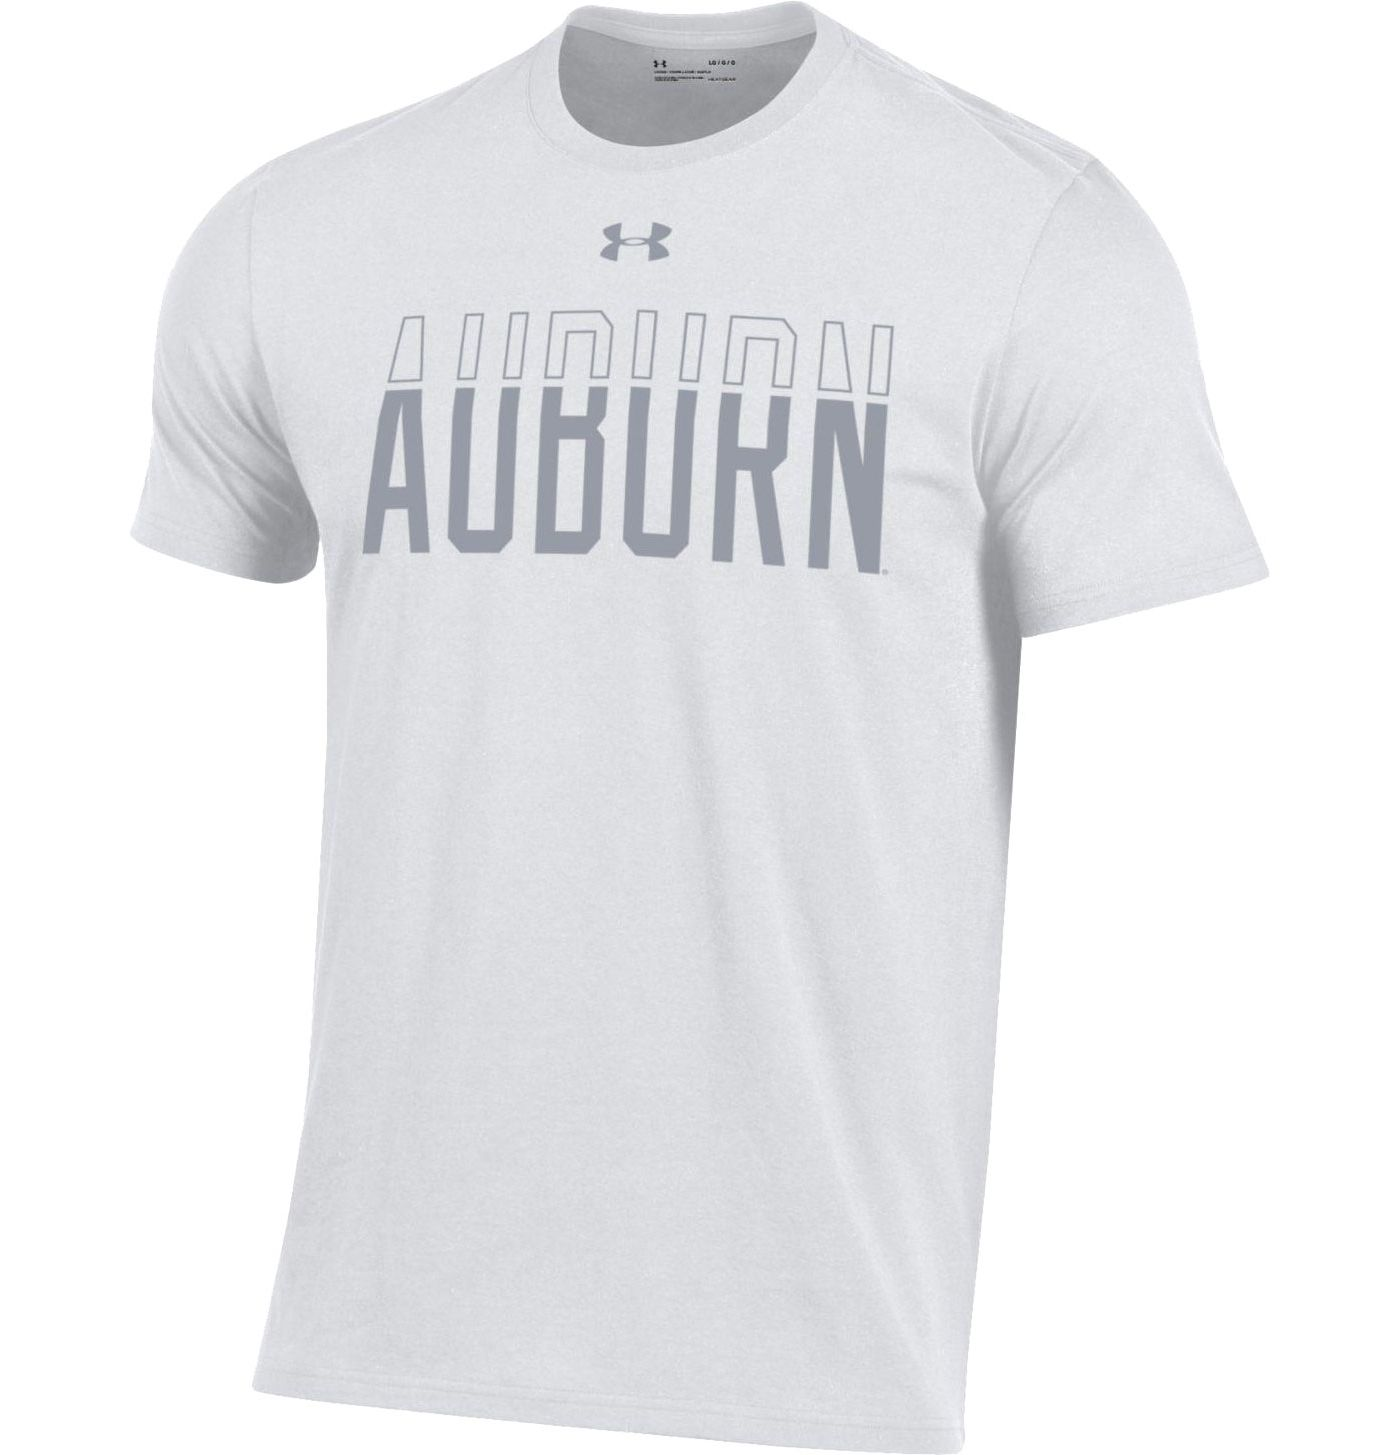 Under Armour Men's Auburn Tigers 'White Out' Performance Cotton Football T-Shirt